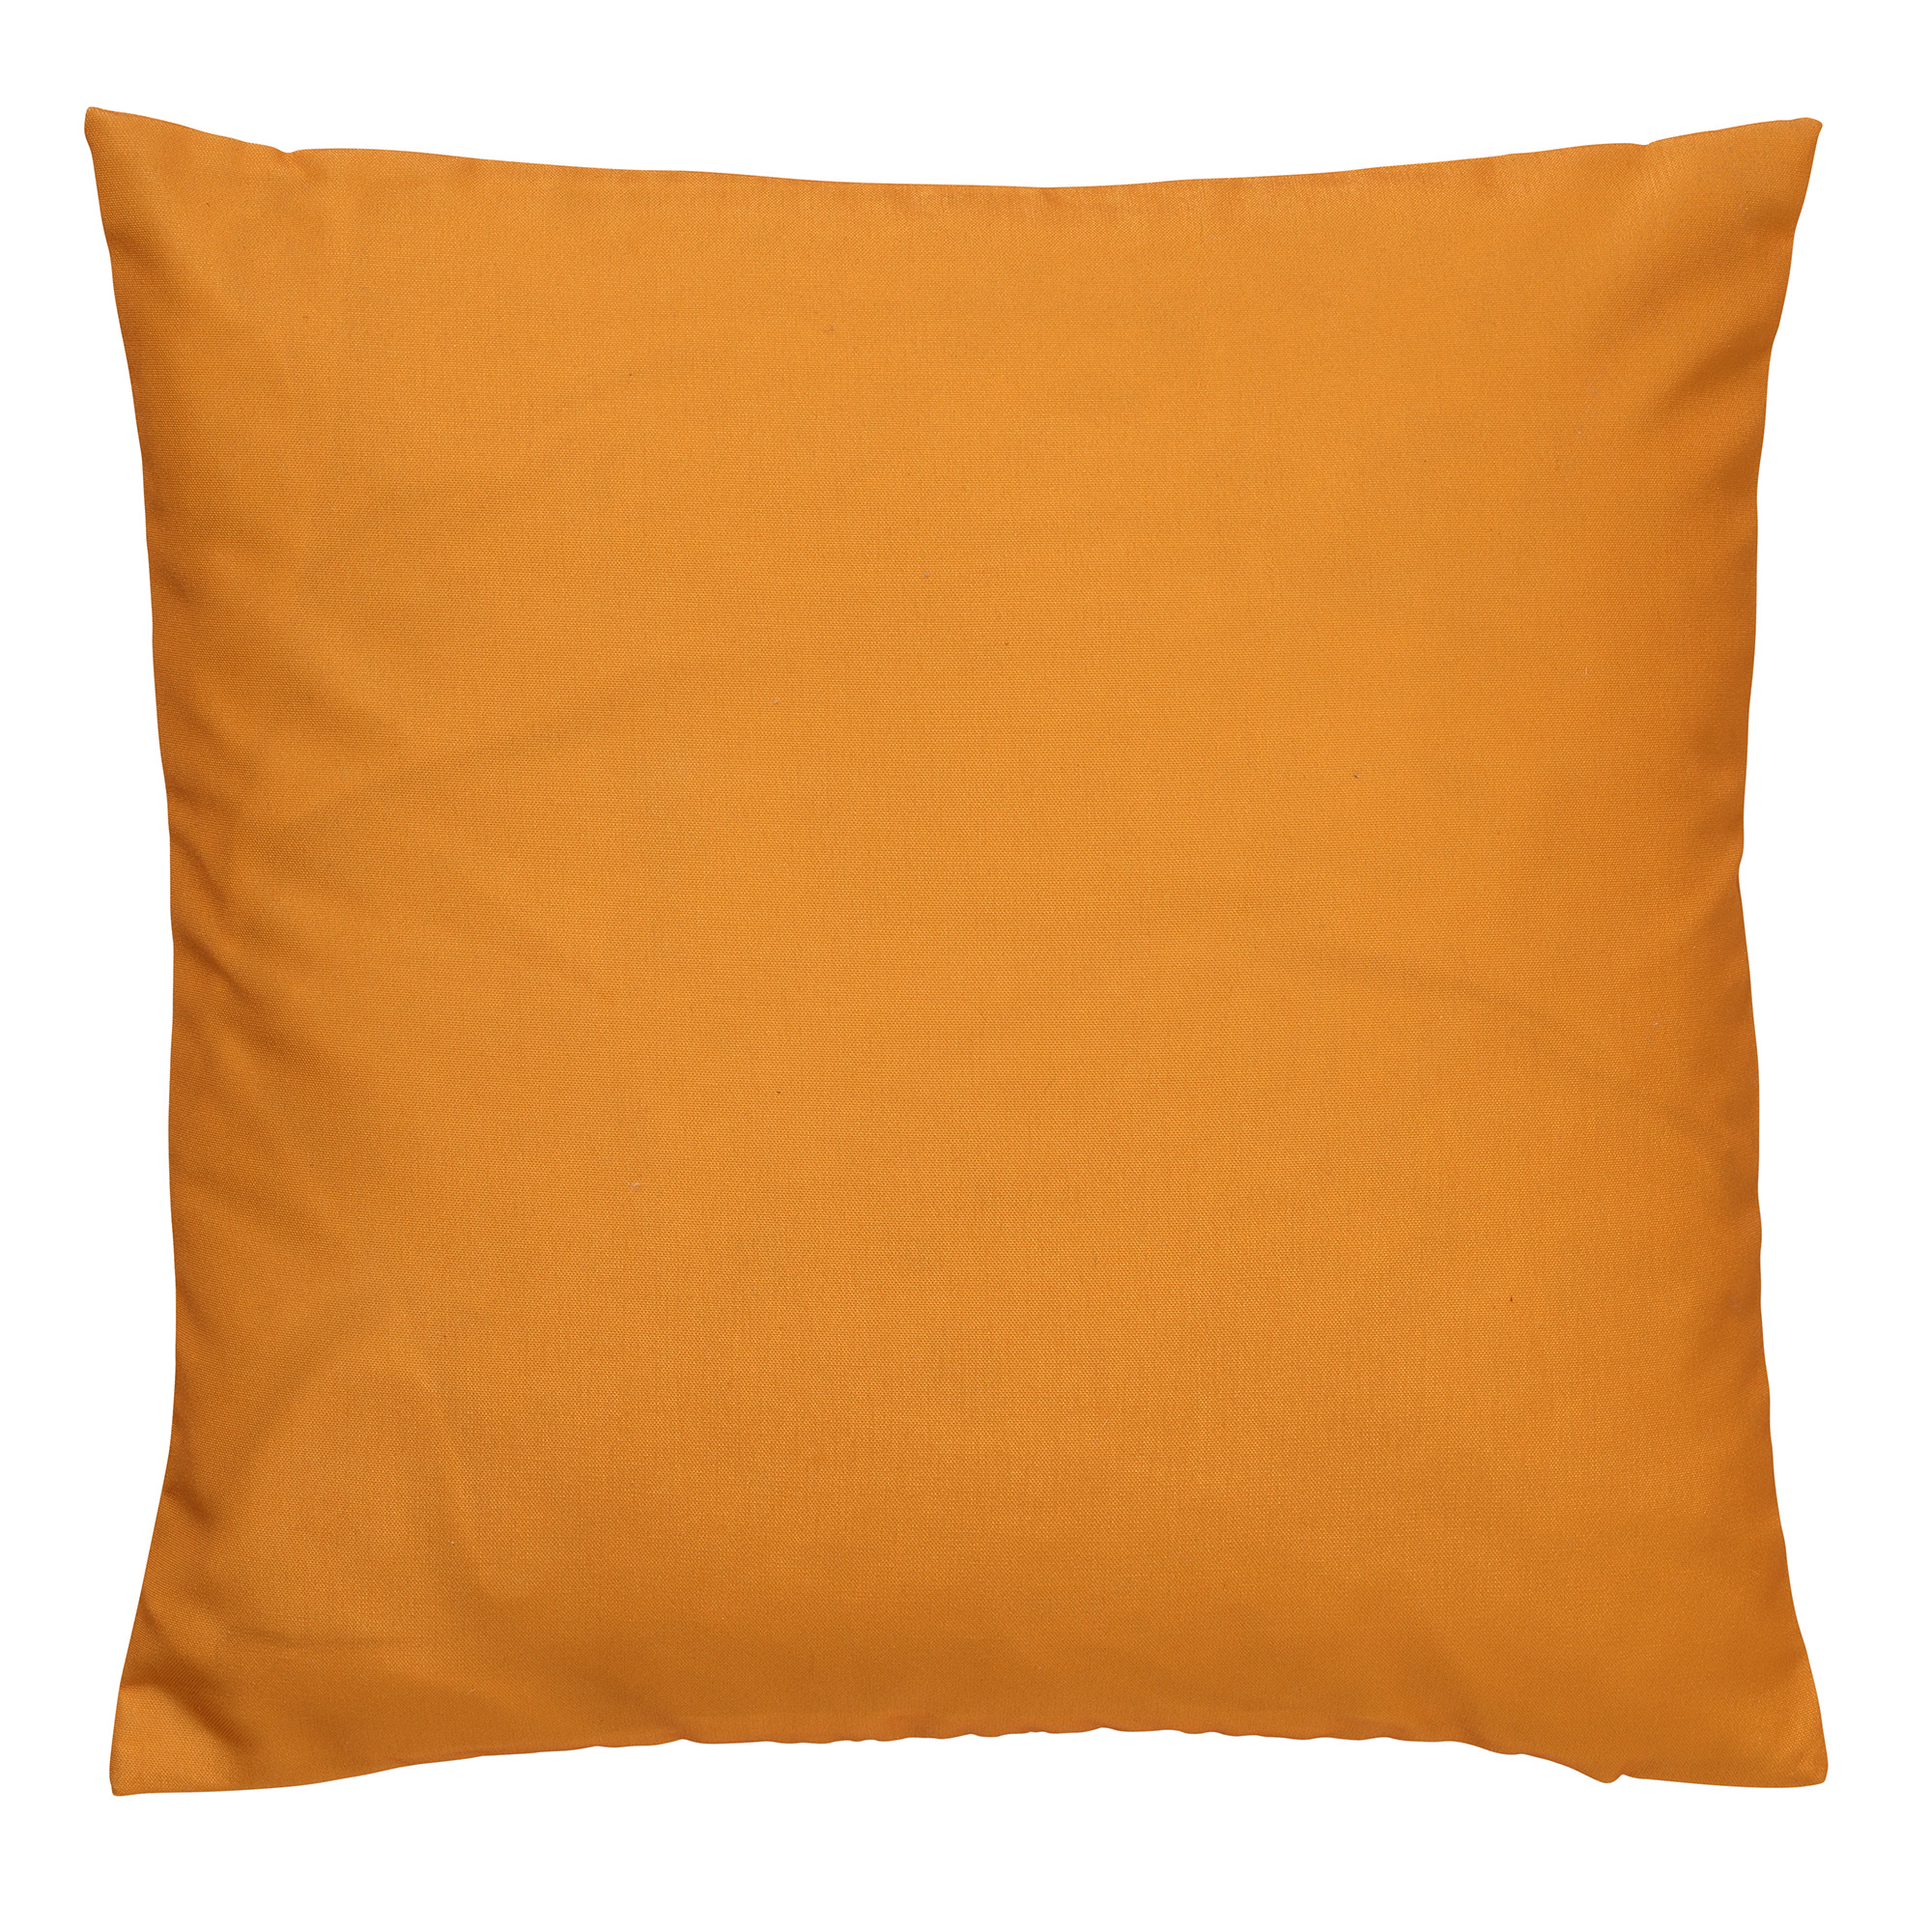 SANTORINI - Kussenhoes outdoor Golden Glow 45x45 cm